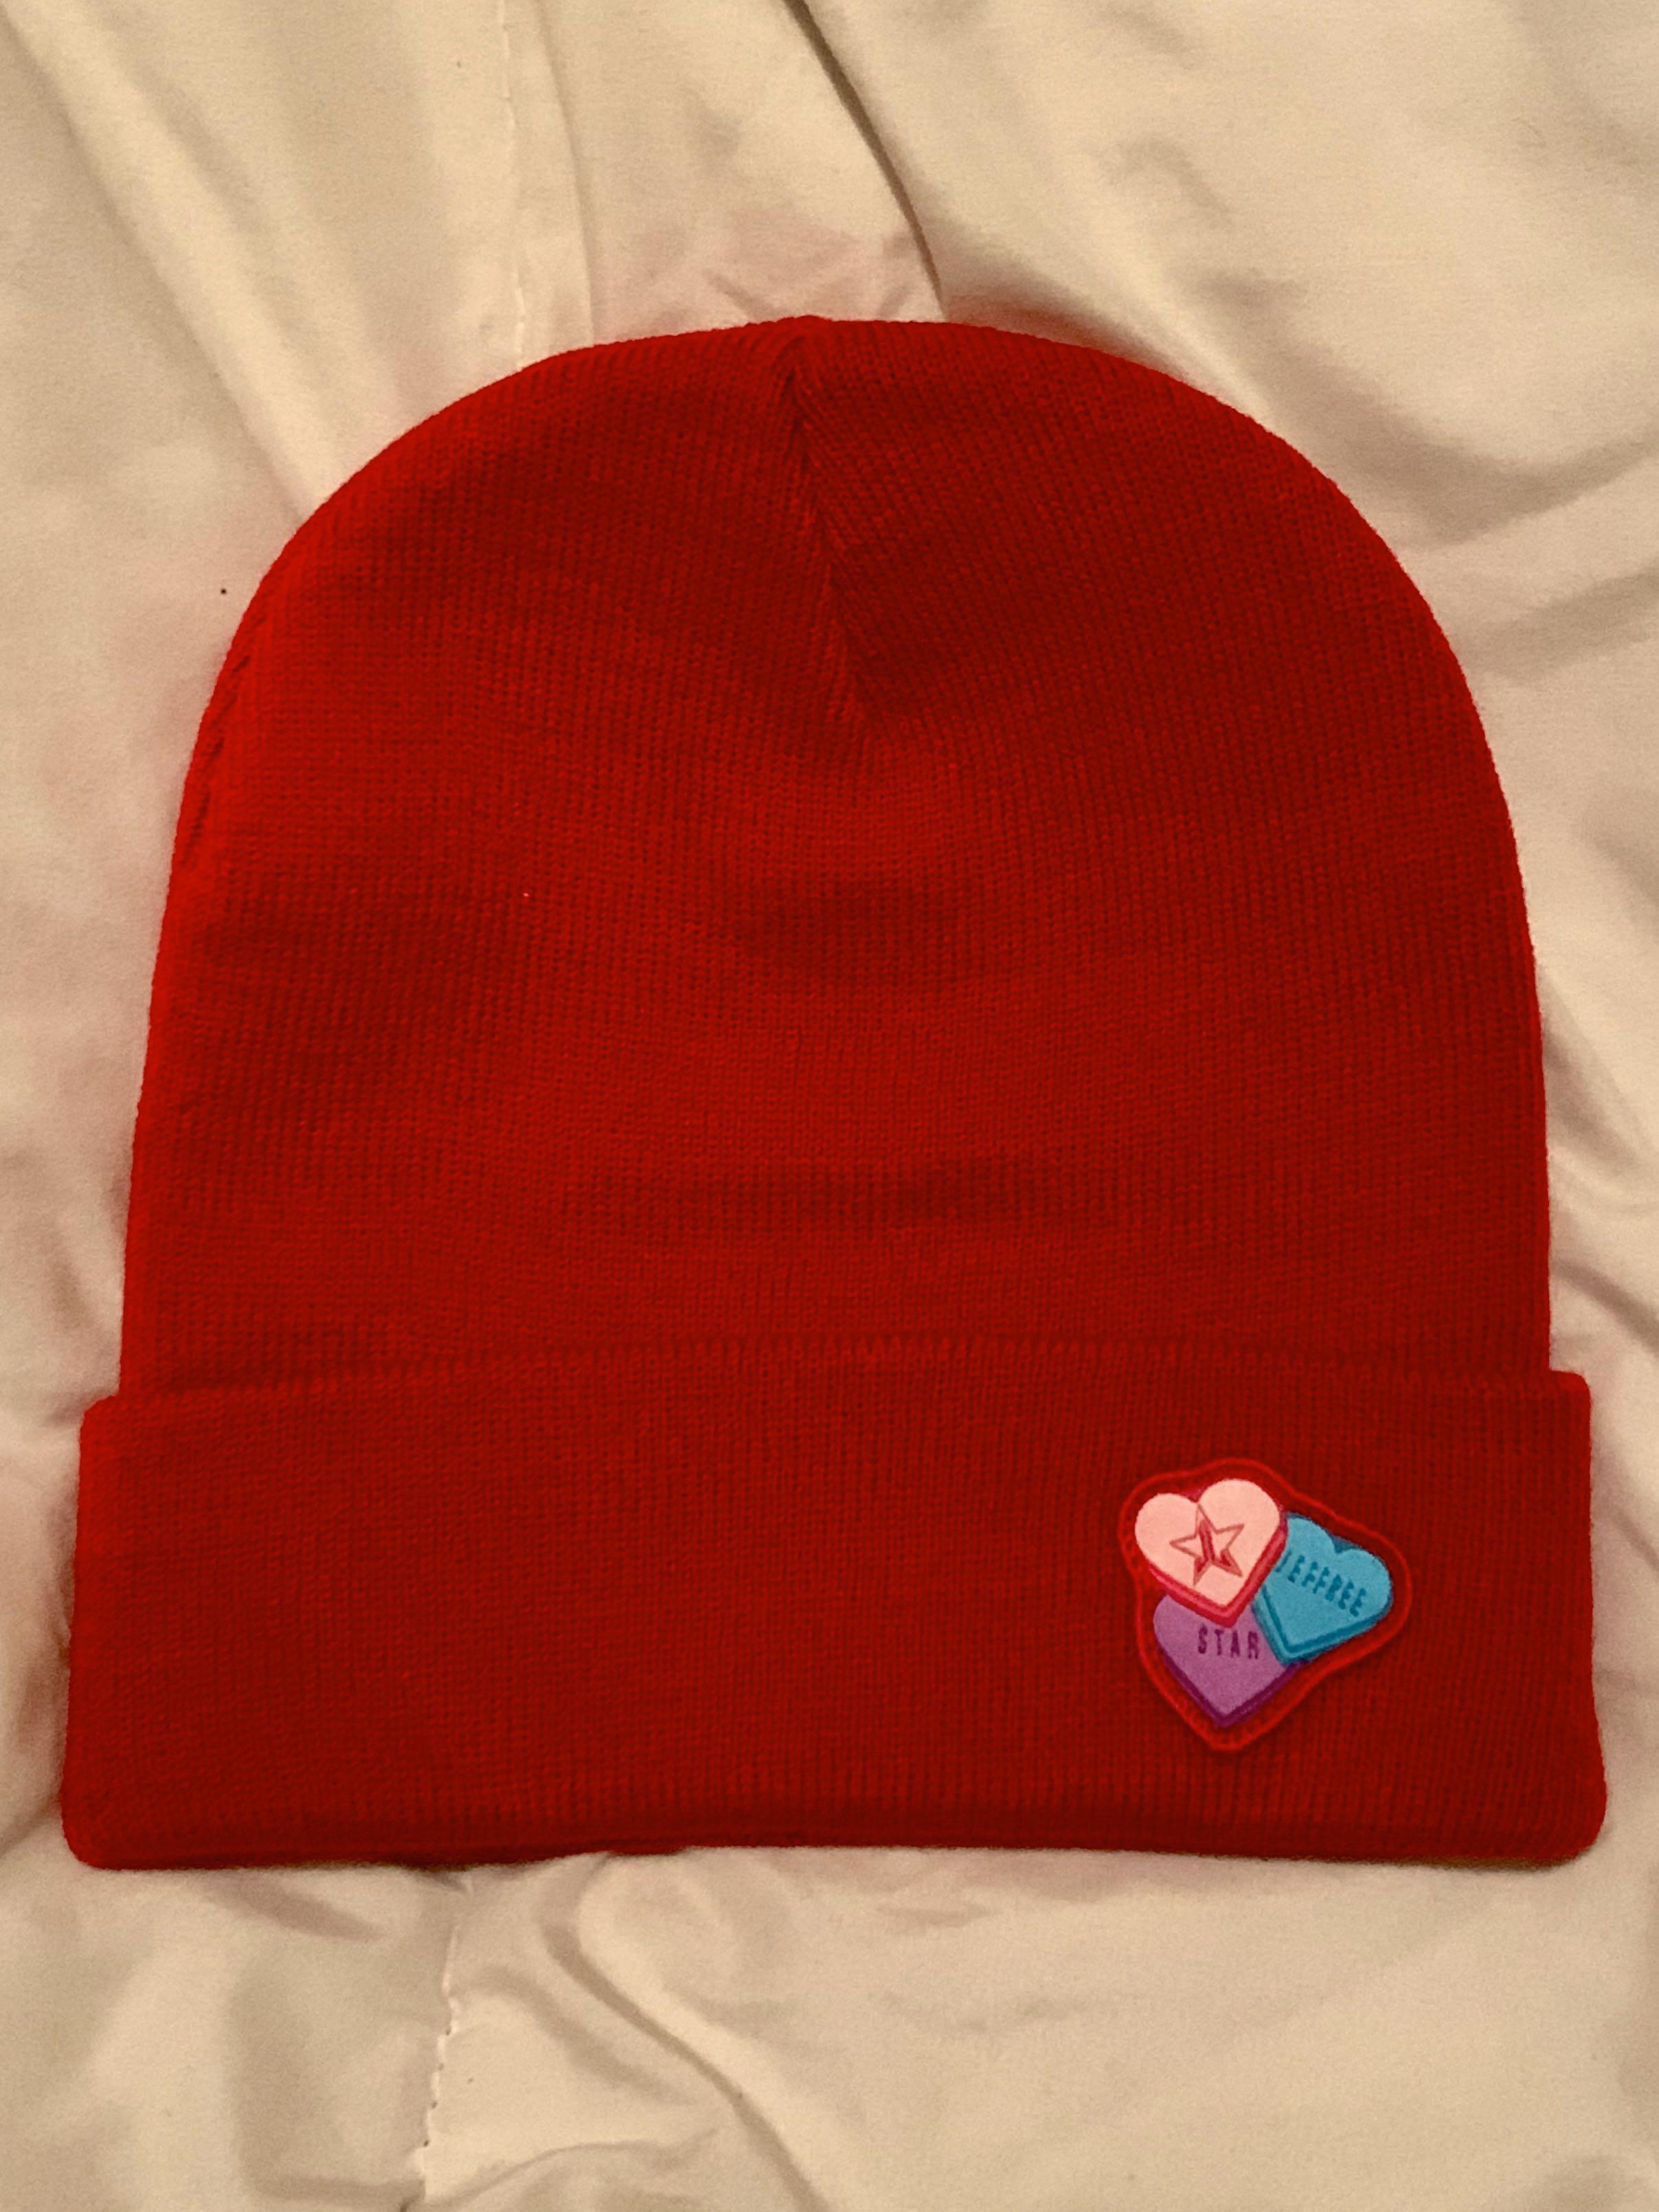 JEFFREE STAR COSMETICS EXCLUSIVE LIMITED EDITION TOQUE & POP SOCKET VALENTINES MYSTERY BOX 2020